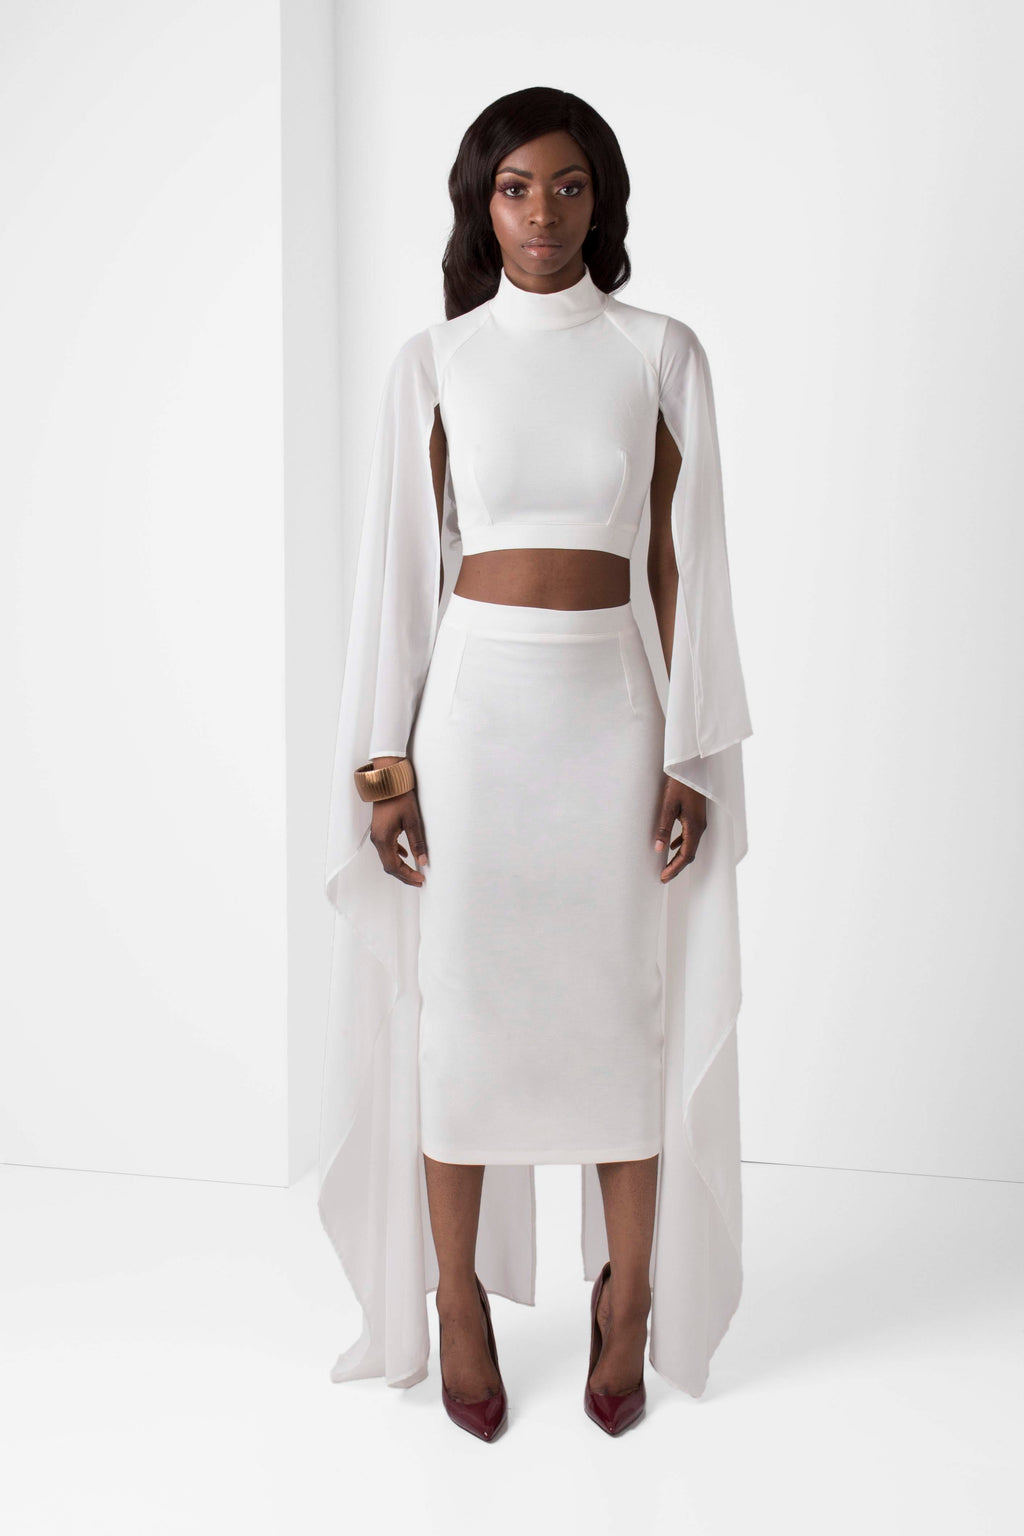 Off-White Crop Top with Chiffon Sleeve - pacorogiene